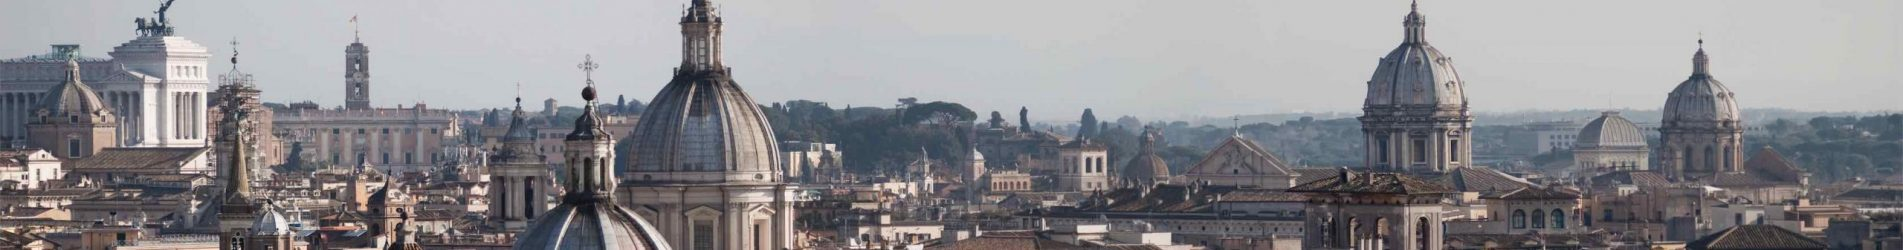 cropped-rome-header-scaled-1.jpg